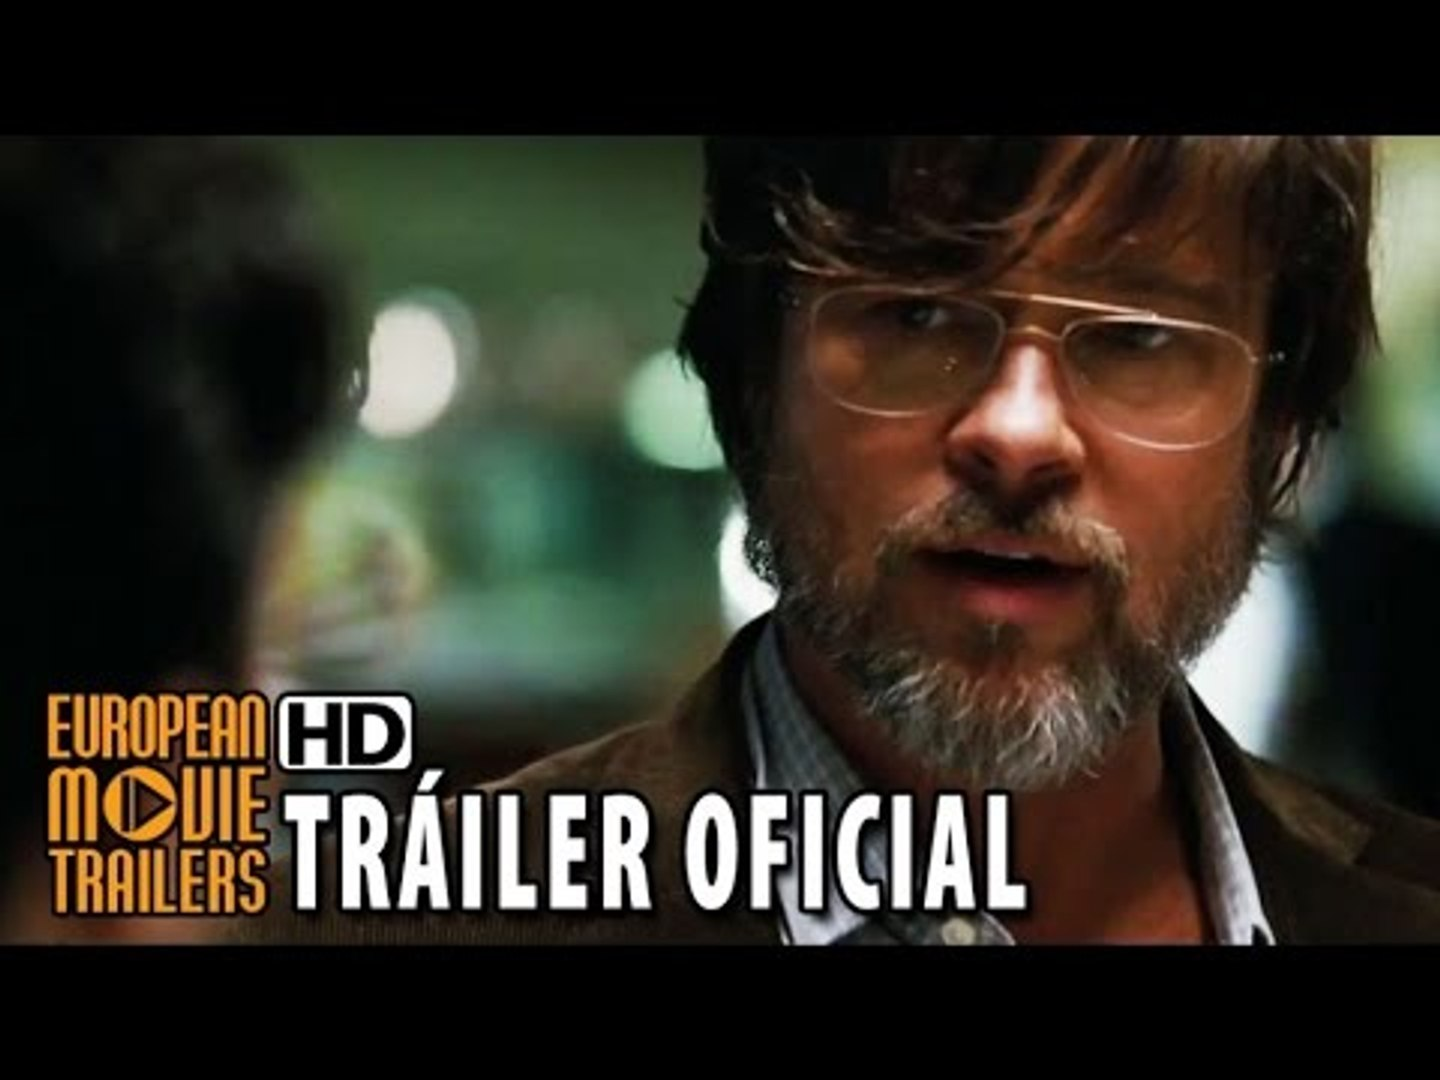 La Gran Apuesta Tráiler Oficial 2016 Brad Pitt Christian Bale Hd Video Dailymotion